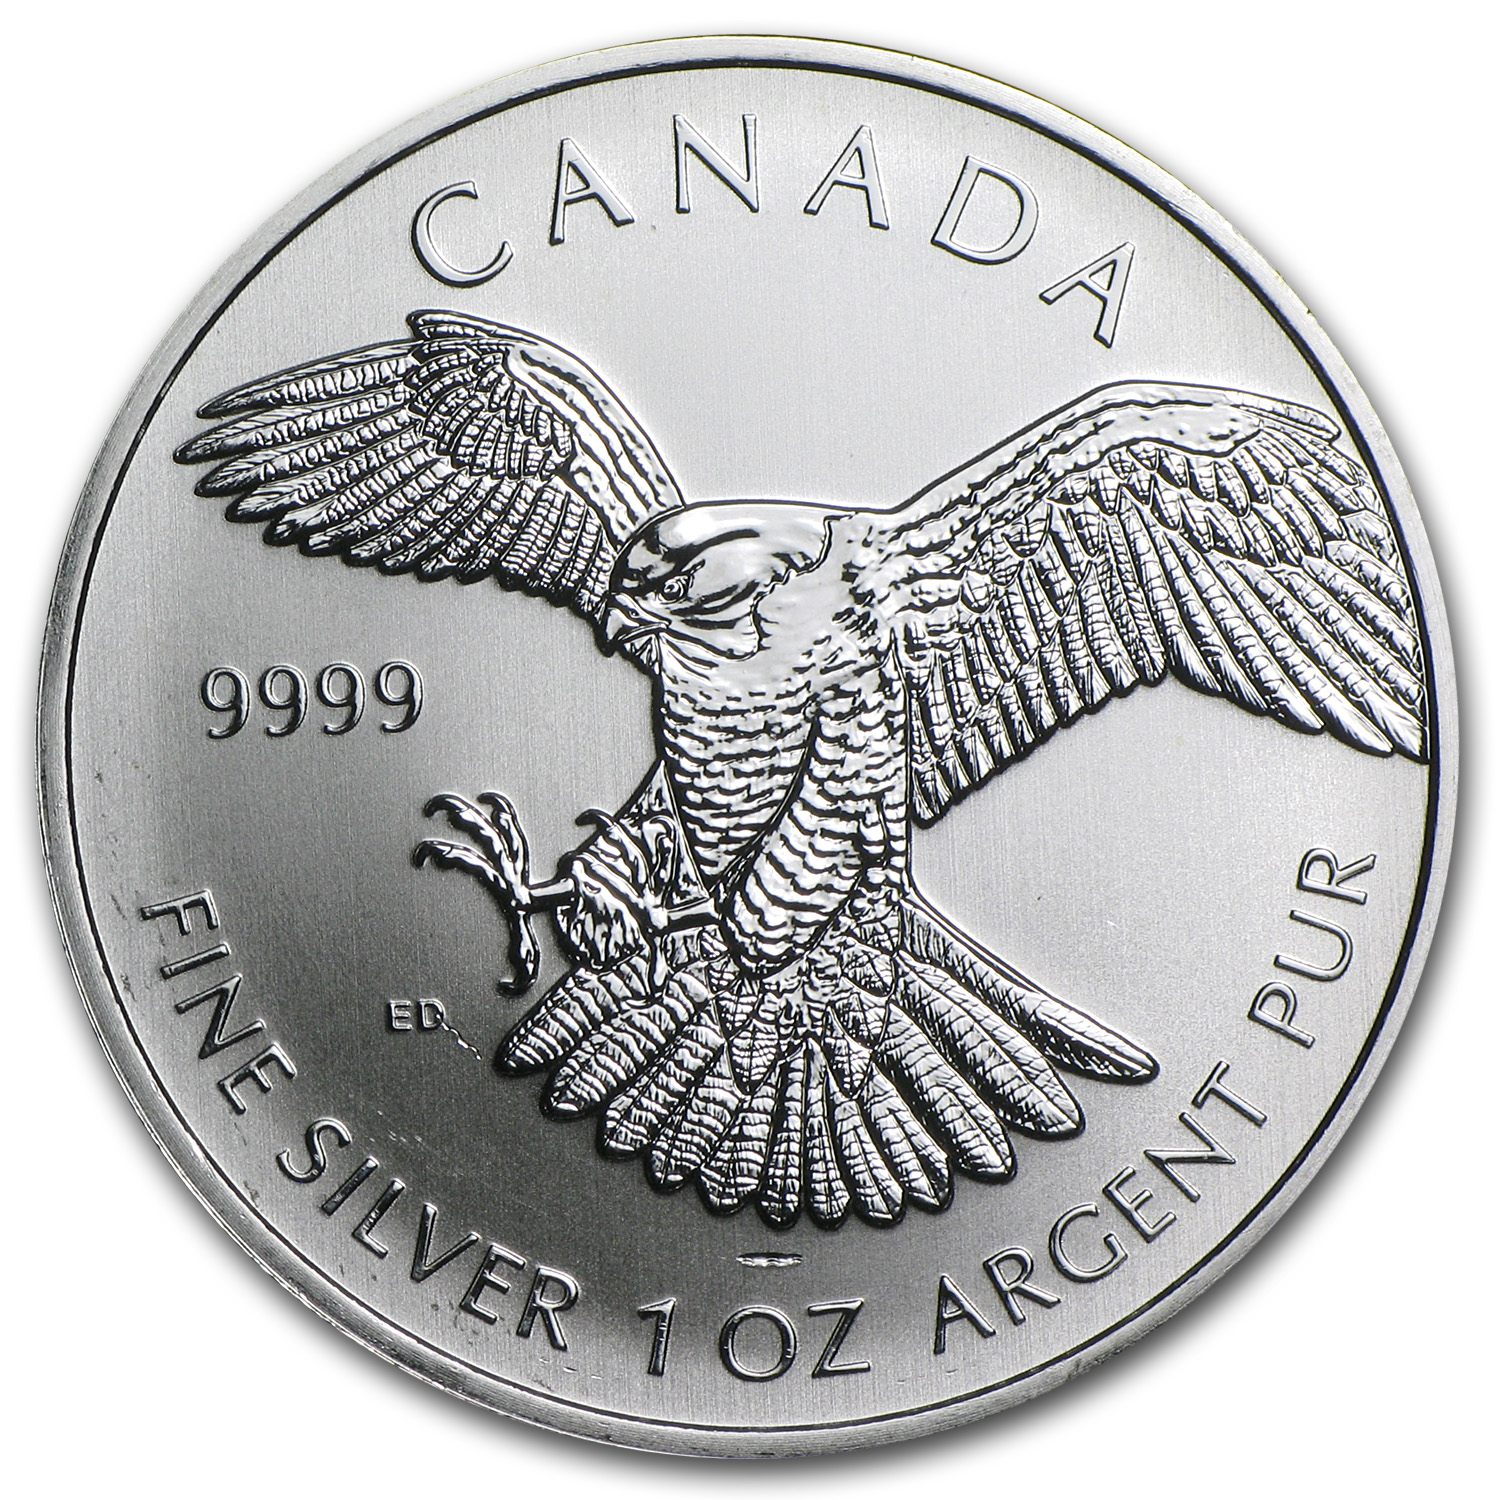 2014 1 oz Silver Birds of Prey Peregrine Falcon (Abrasions/Spots)